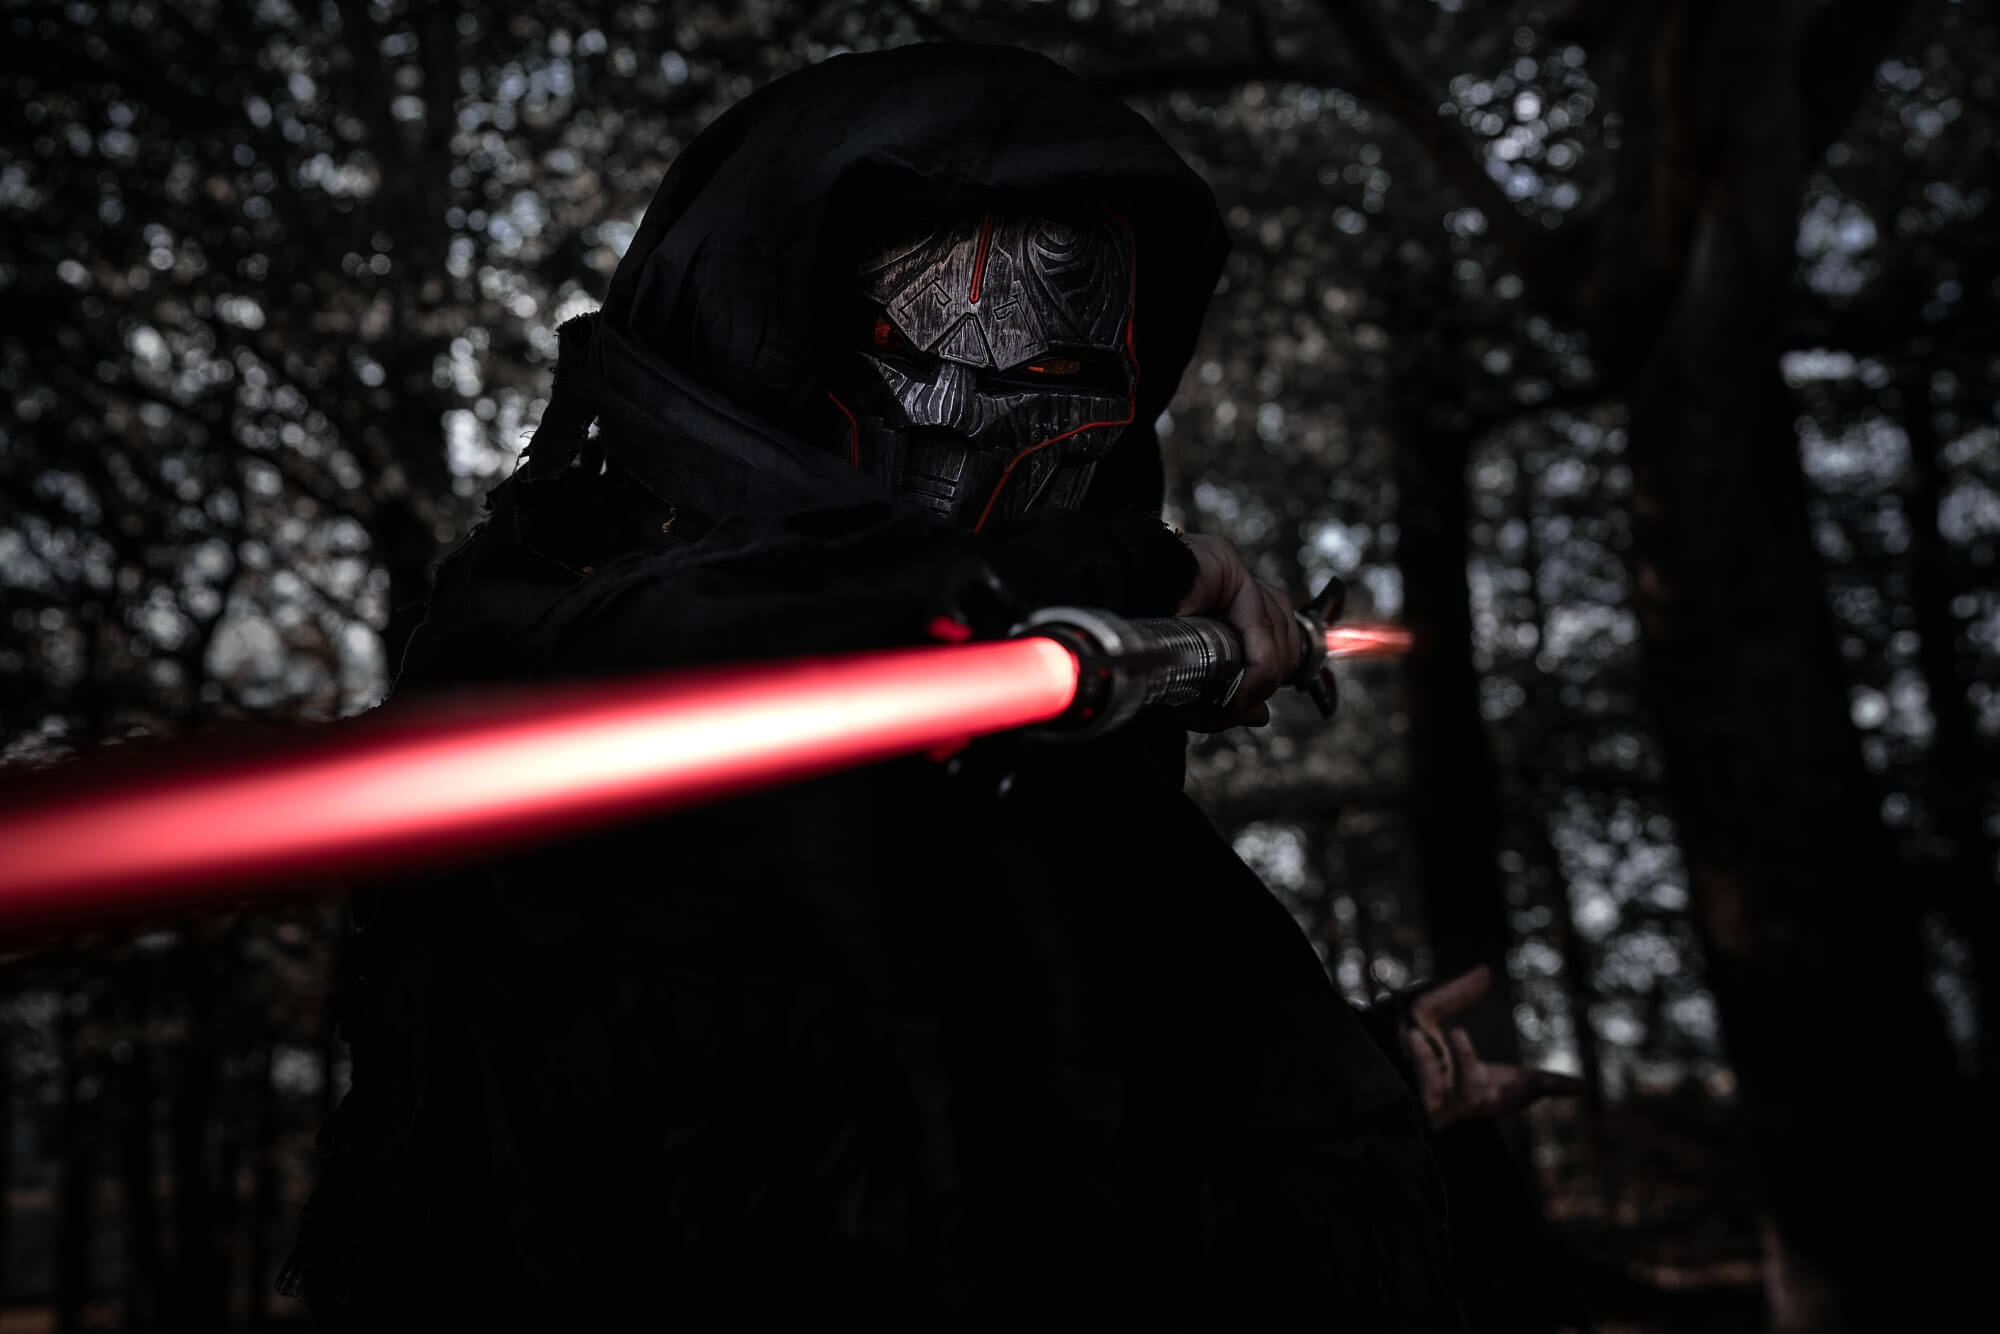 Star Wars Old Republic Sith Cosplay